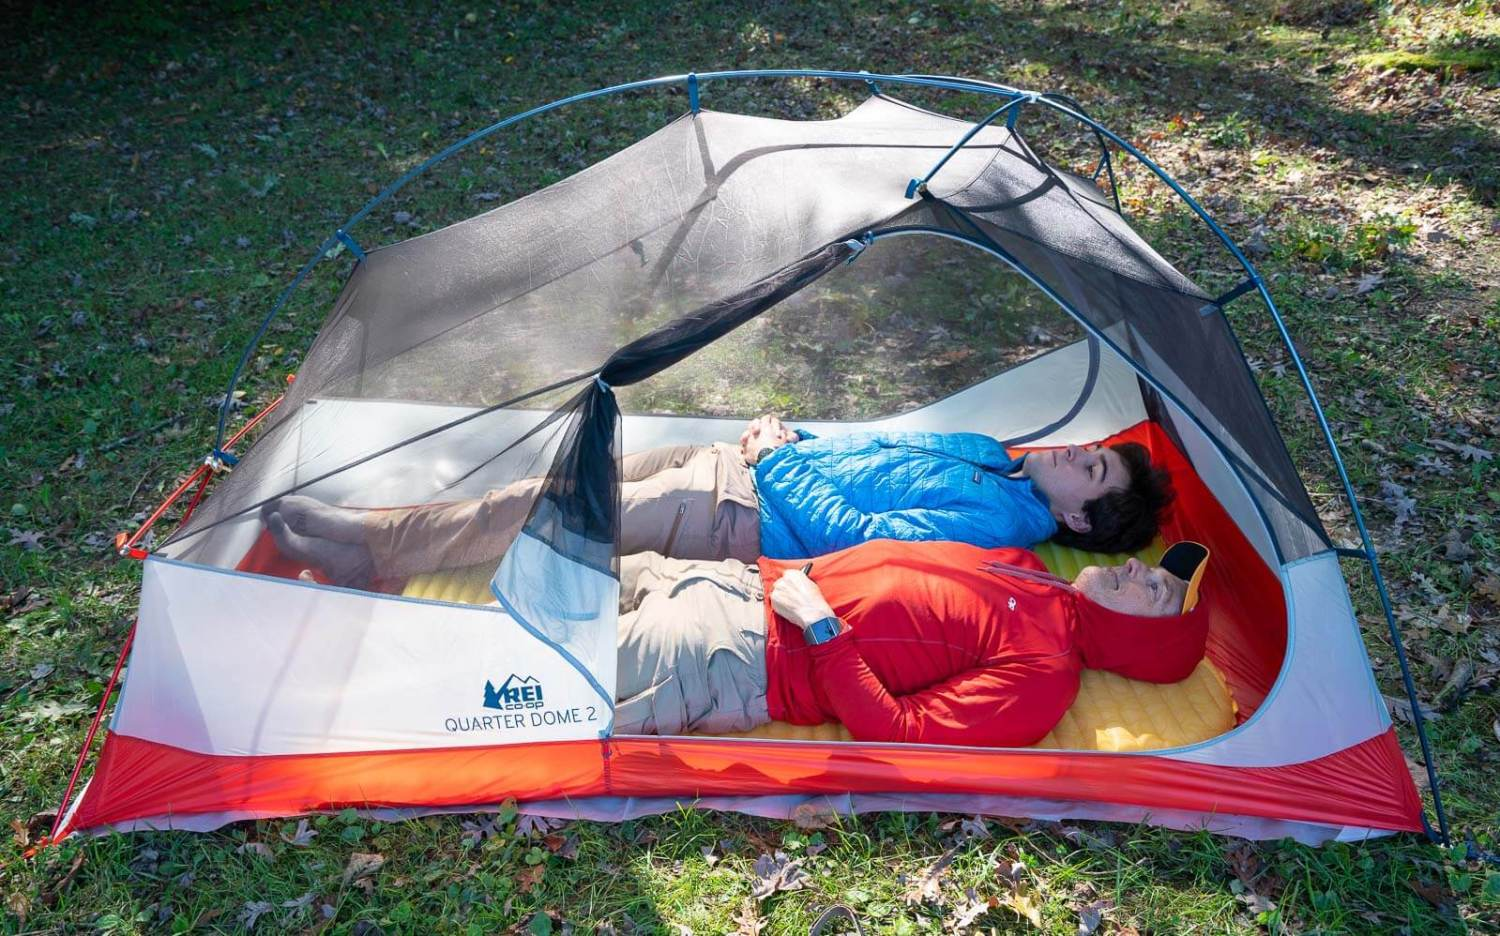 Best Backpacking Tent - REI CO-OP QUARTER DOME 2